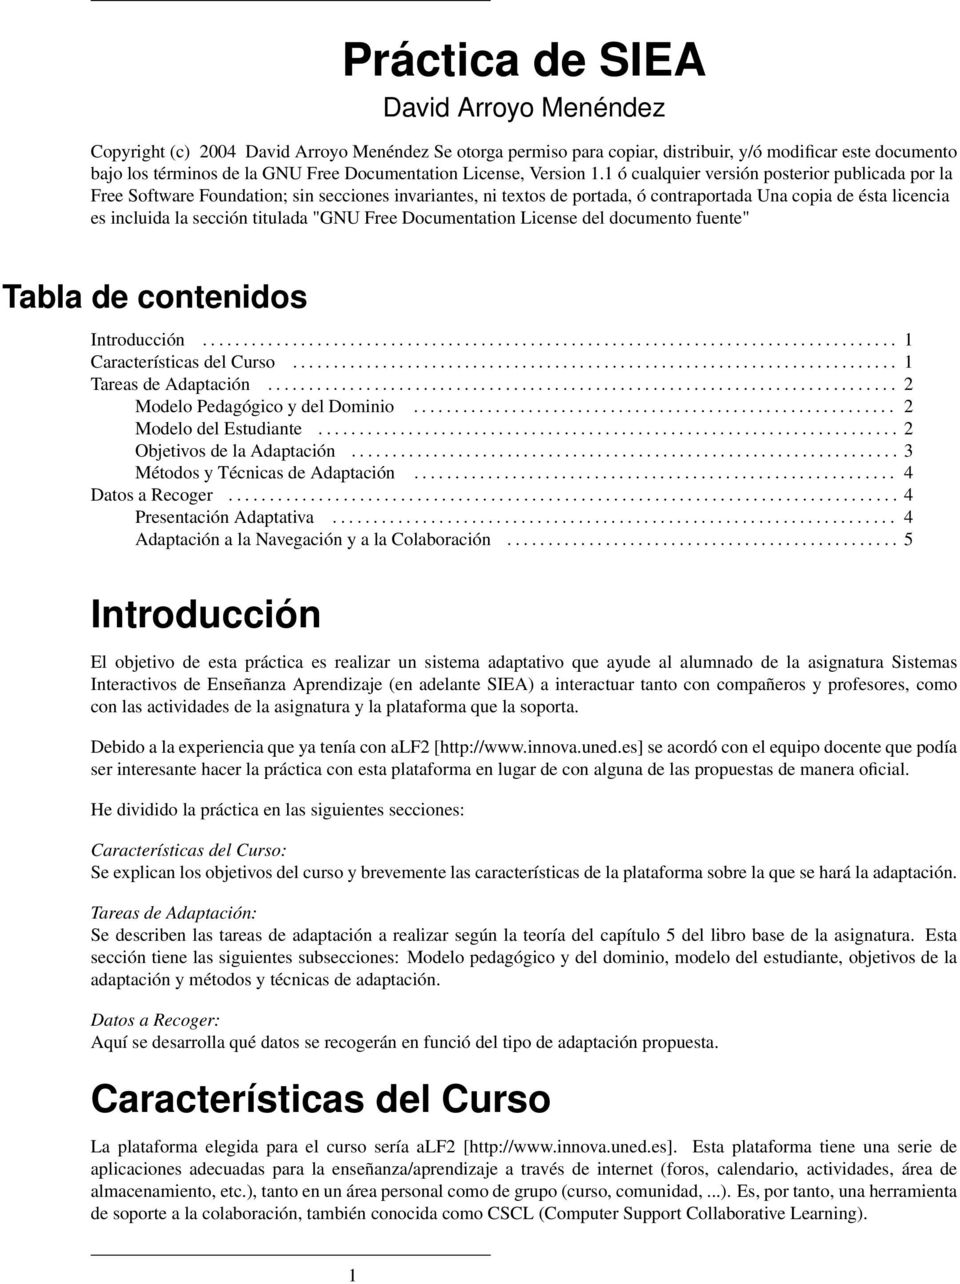 "titulada ""GNU Free Documentation License del documento fuente"" Tabla de contenidos Introducción..................................................................................... 1 Características del Curso."